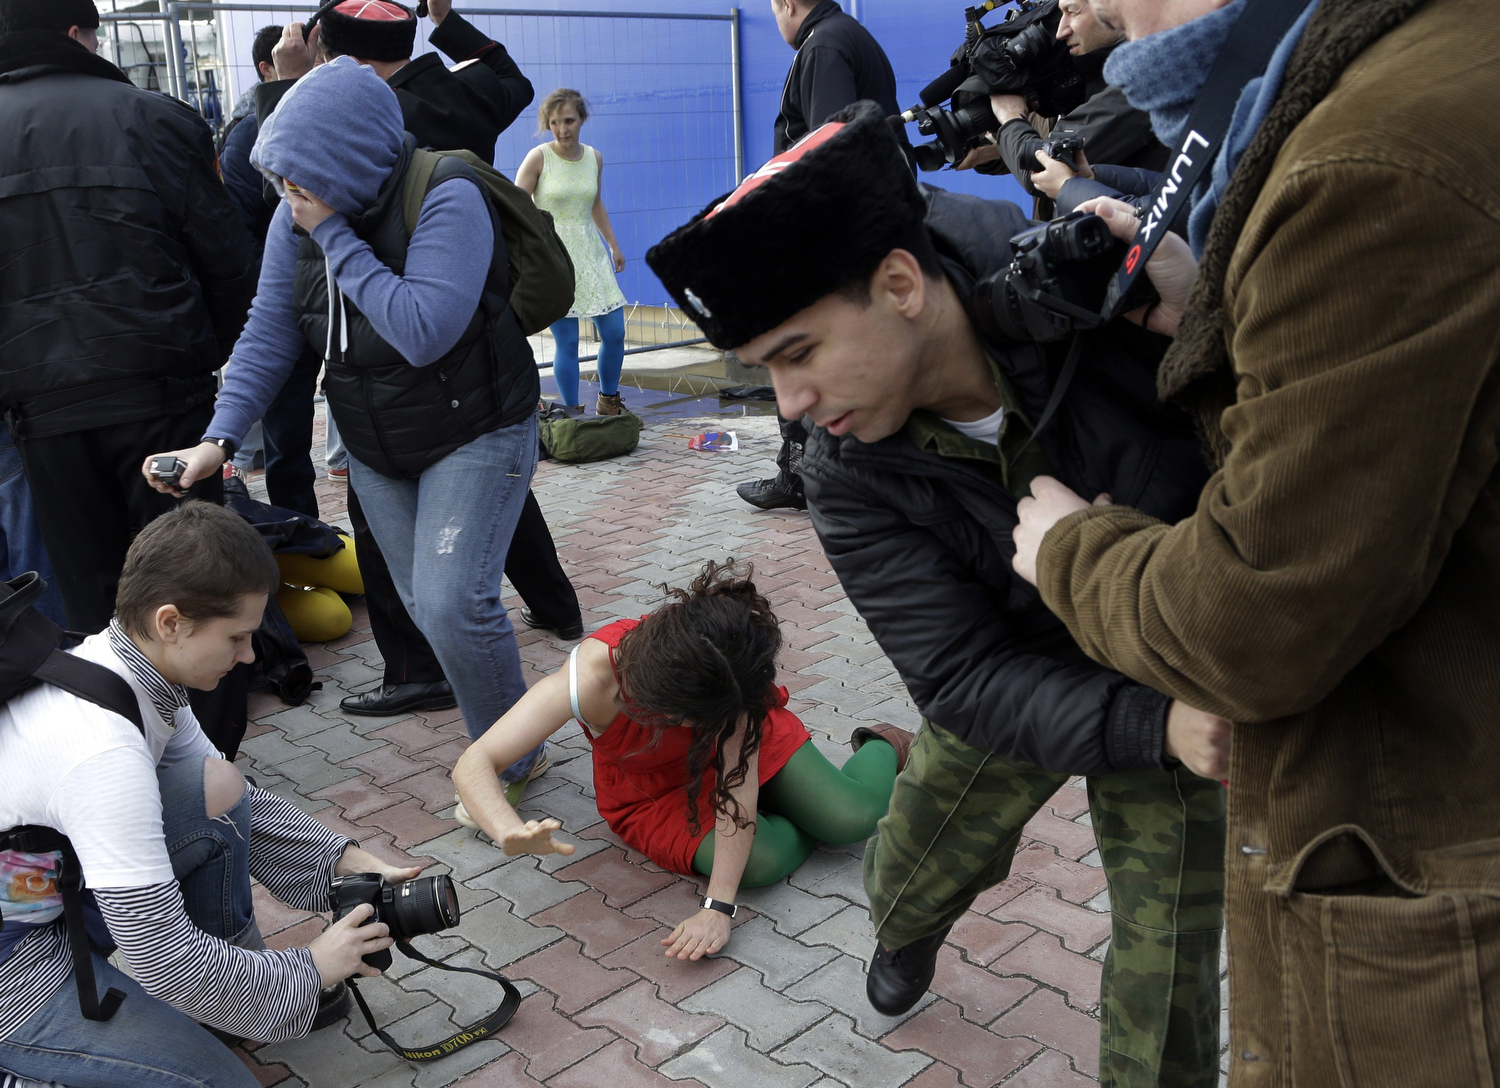 A member of the punk group Pussy Riot lies on the ground as the group are attacked by Cossack militia in Sochi, Russia, on Wednesday, Feb. 19, 2014.